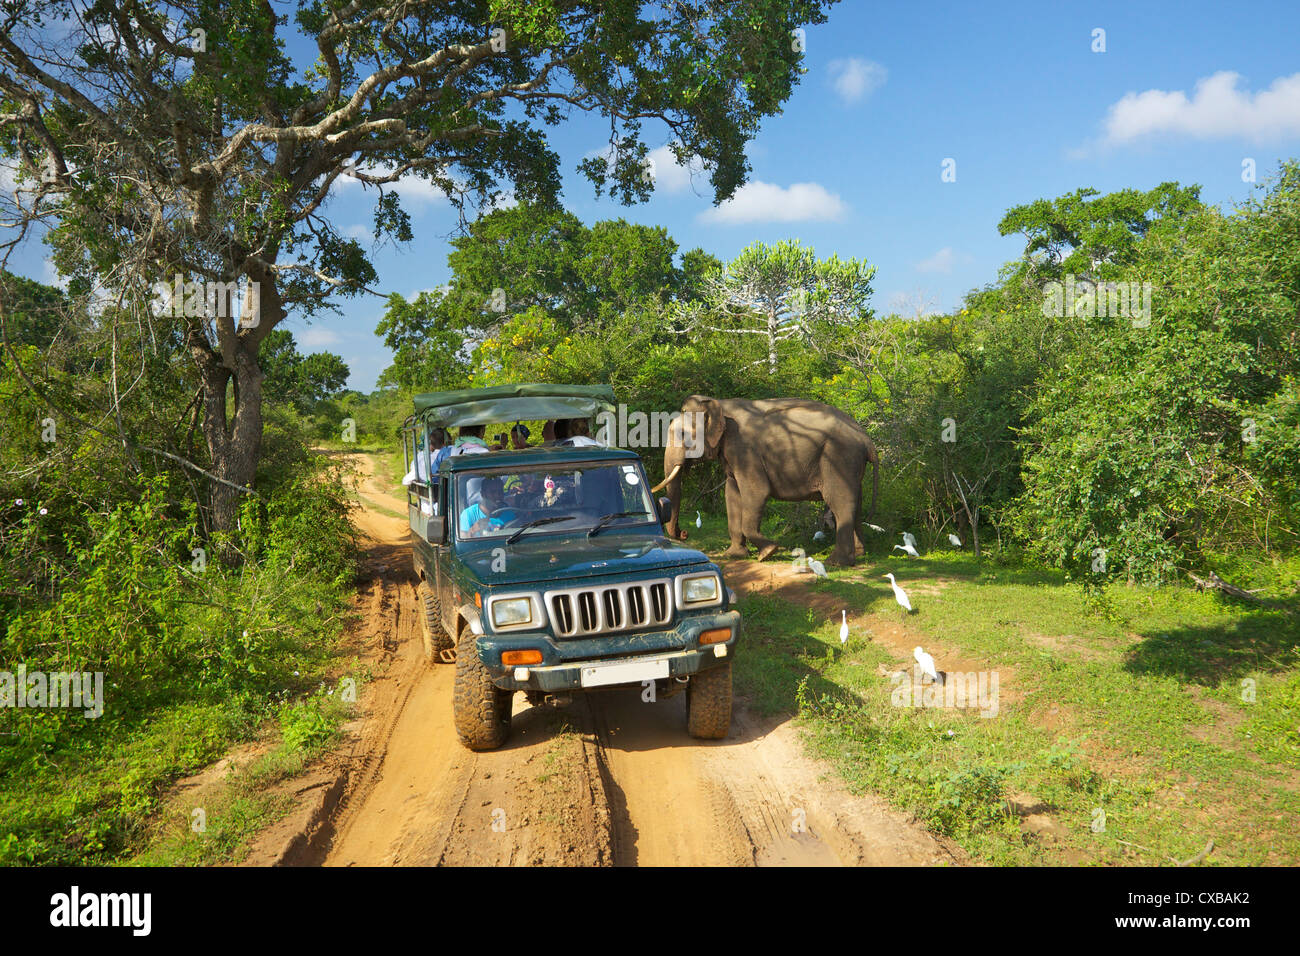 Asiatic tusker elephant (Elephas maximus maximus), close to tourists in jeep, Yala National Park, Sri Lanka, Asia - Stock Image